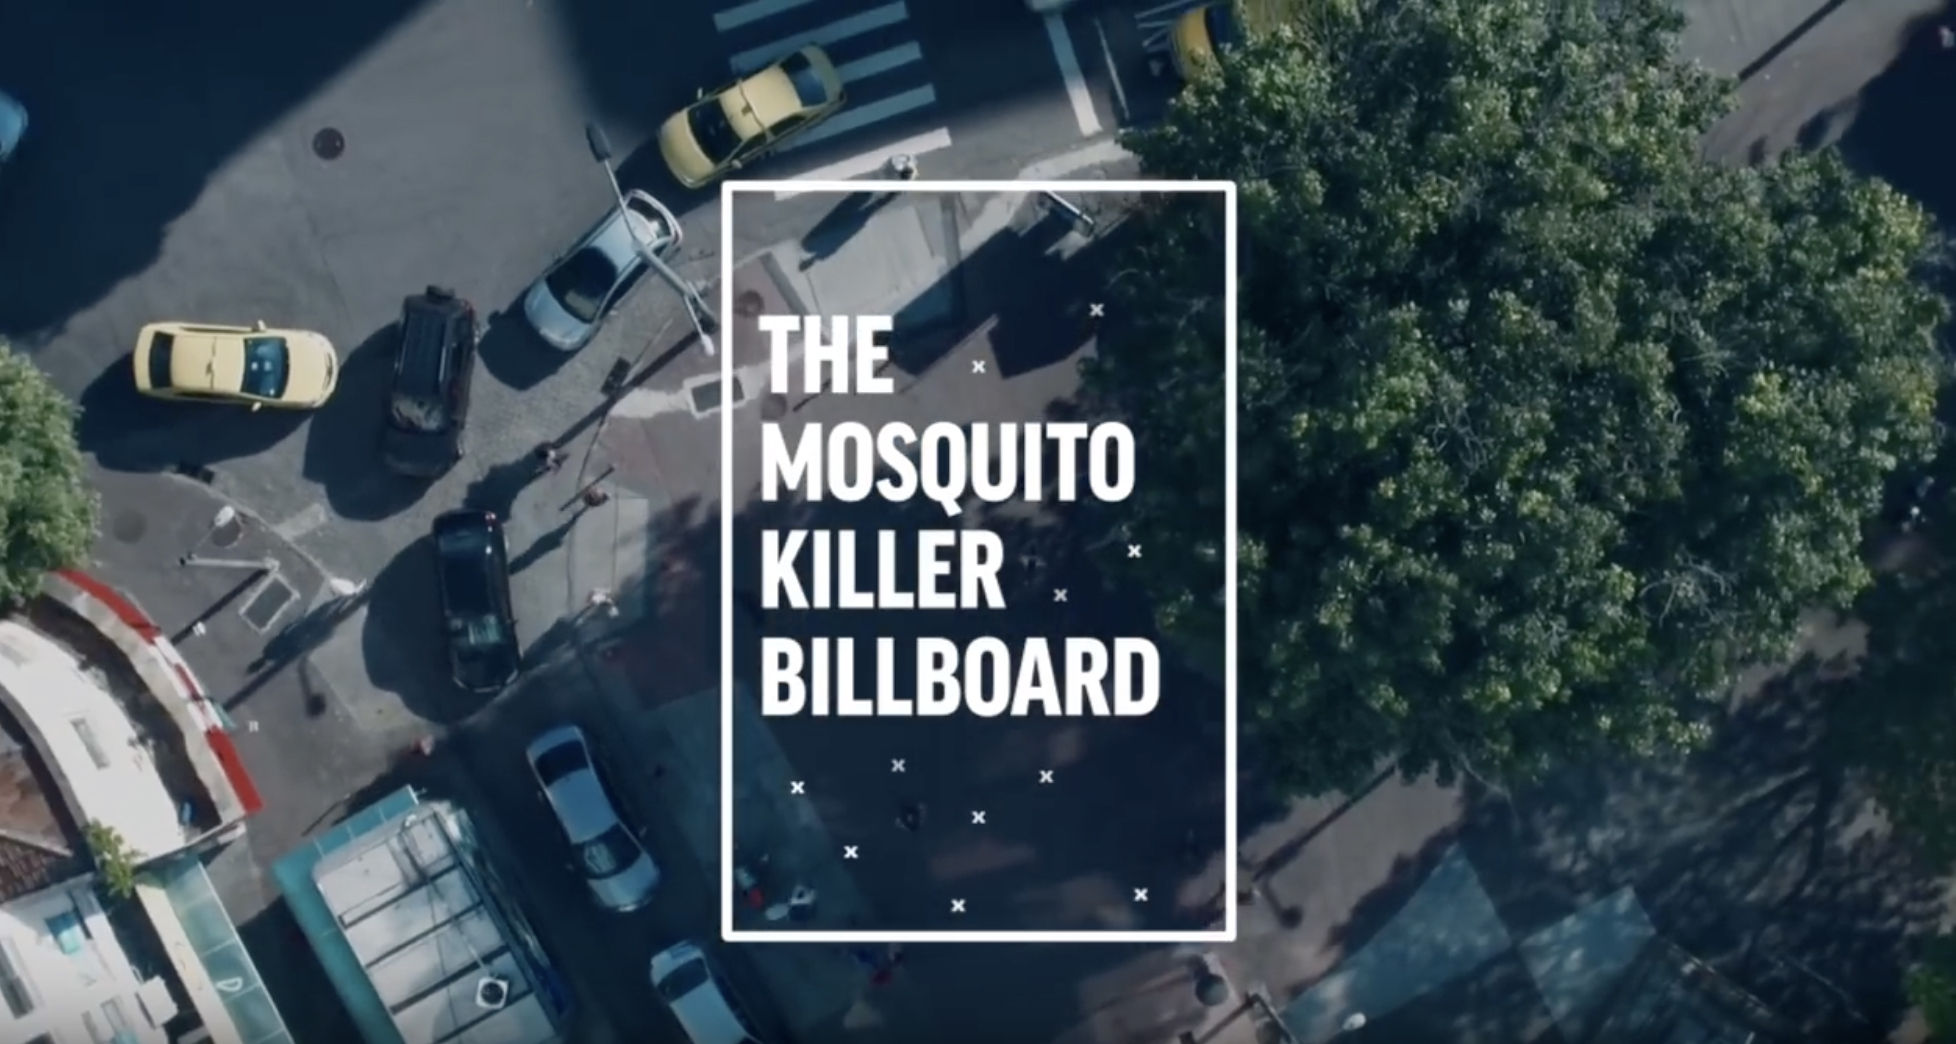 The Mosquito Killer Creative Billboard Wins 2017 Muse Creative Awards